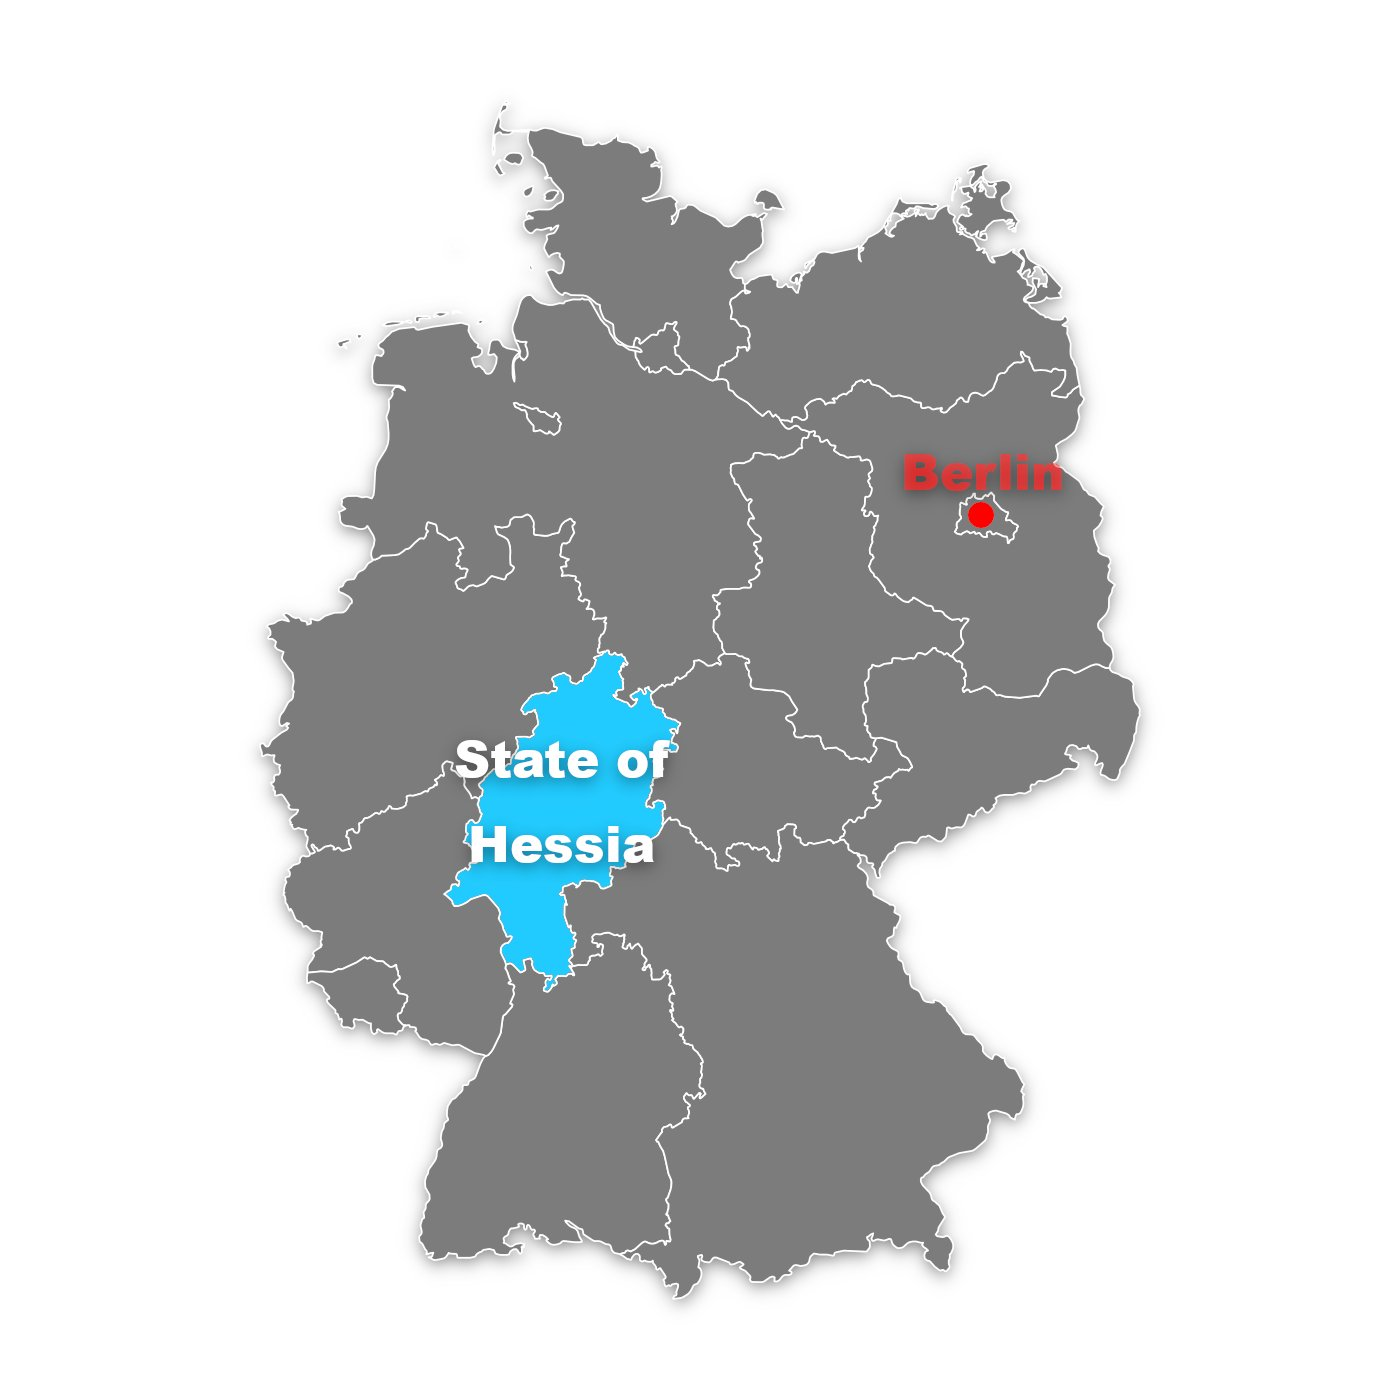 state of hesse (hessia) in germany